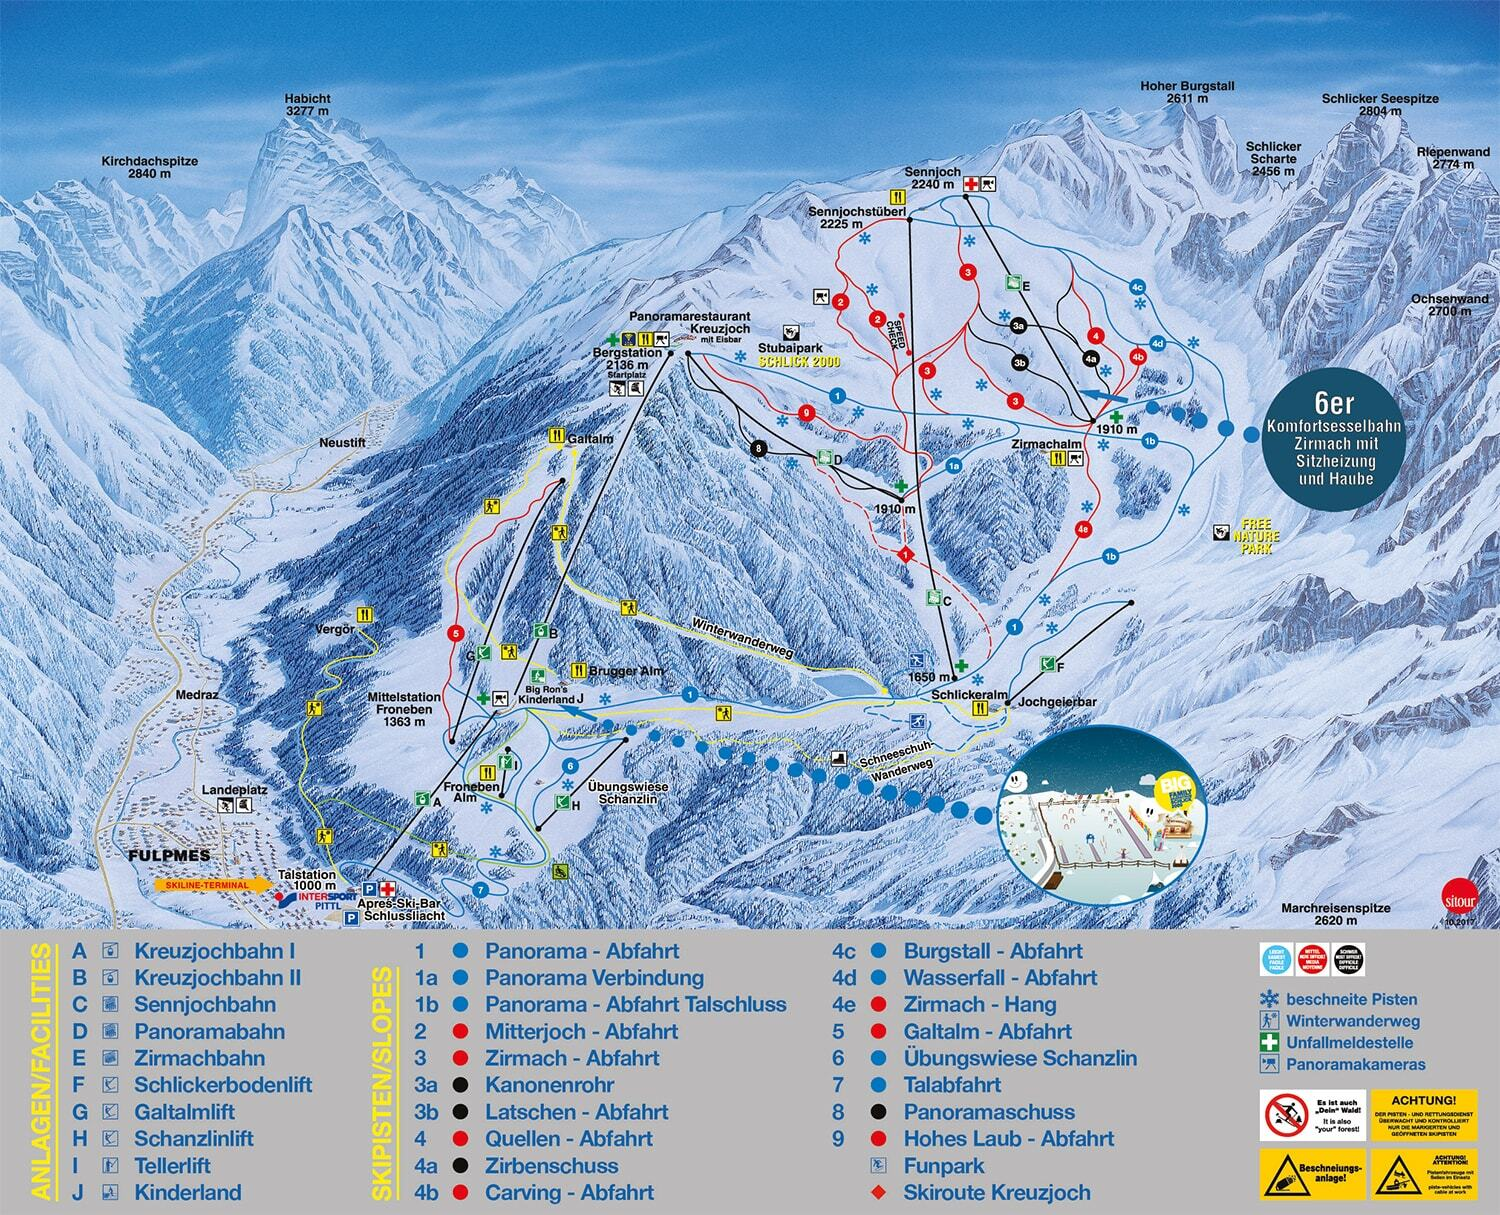 Fulpmes Piste / Trail Map